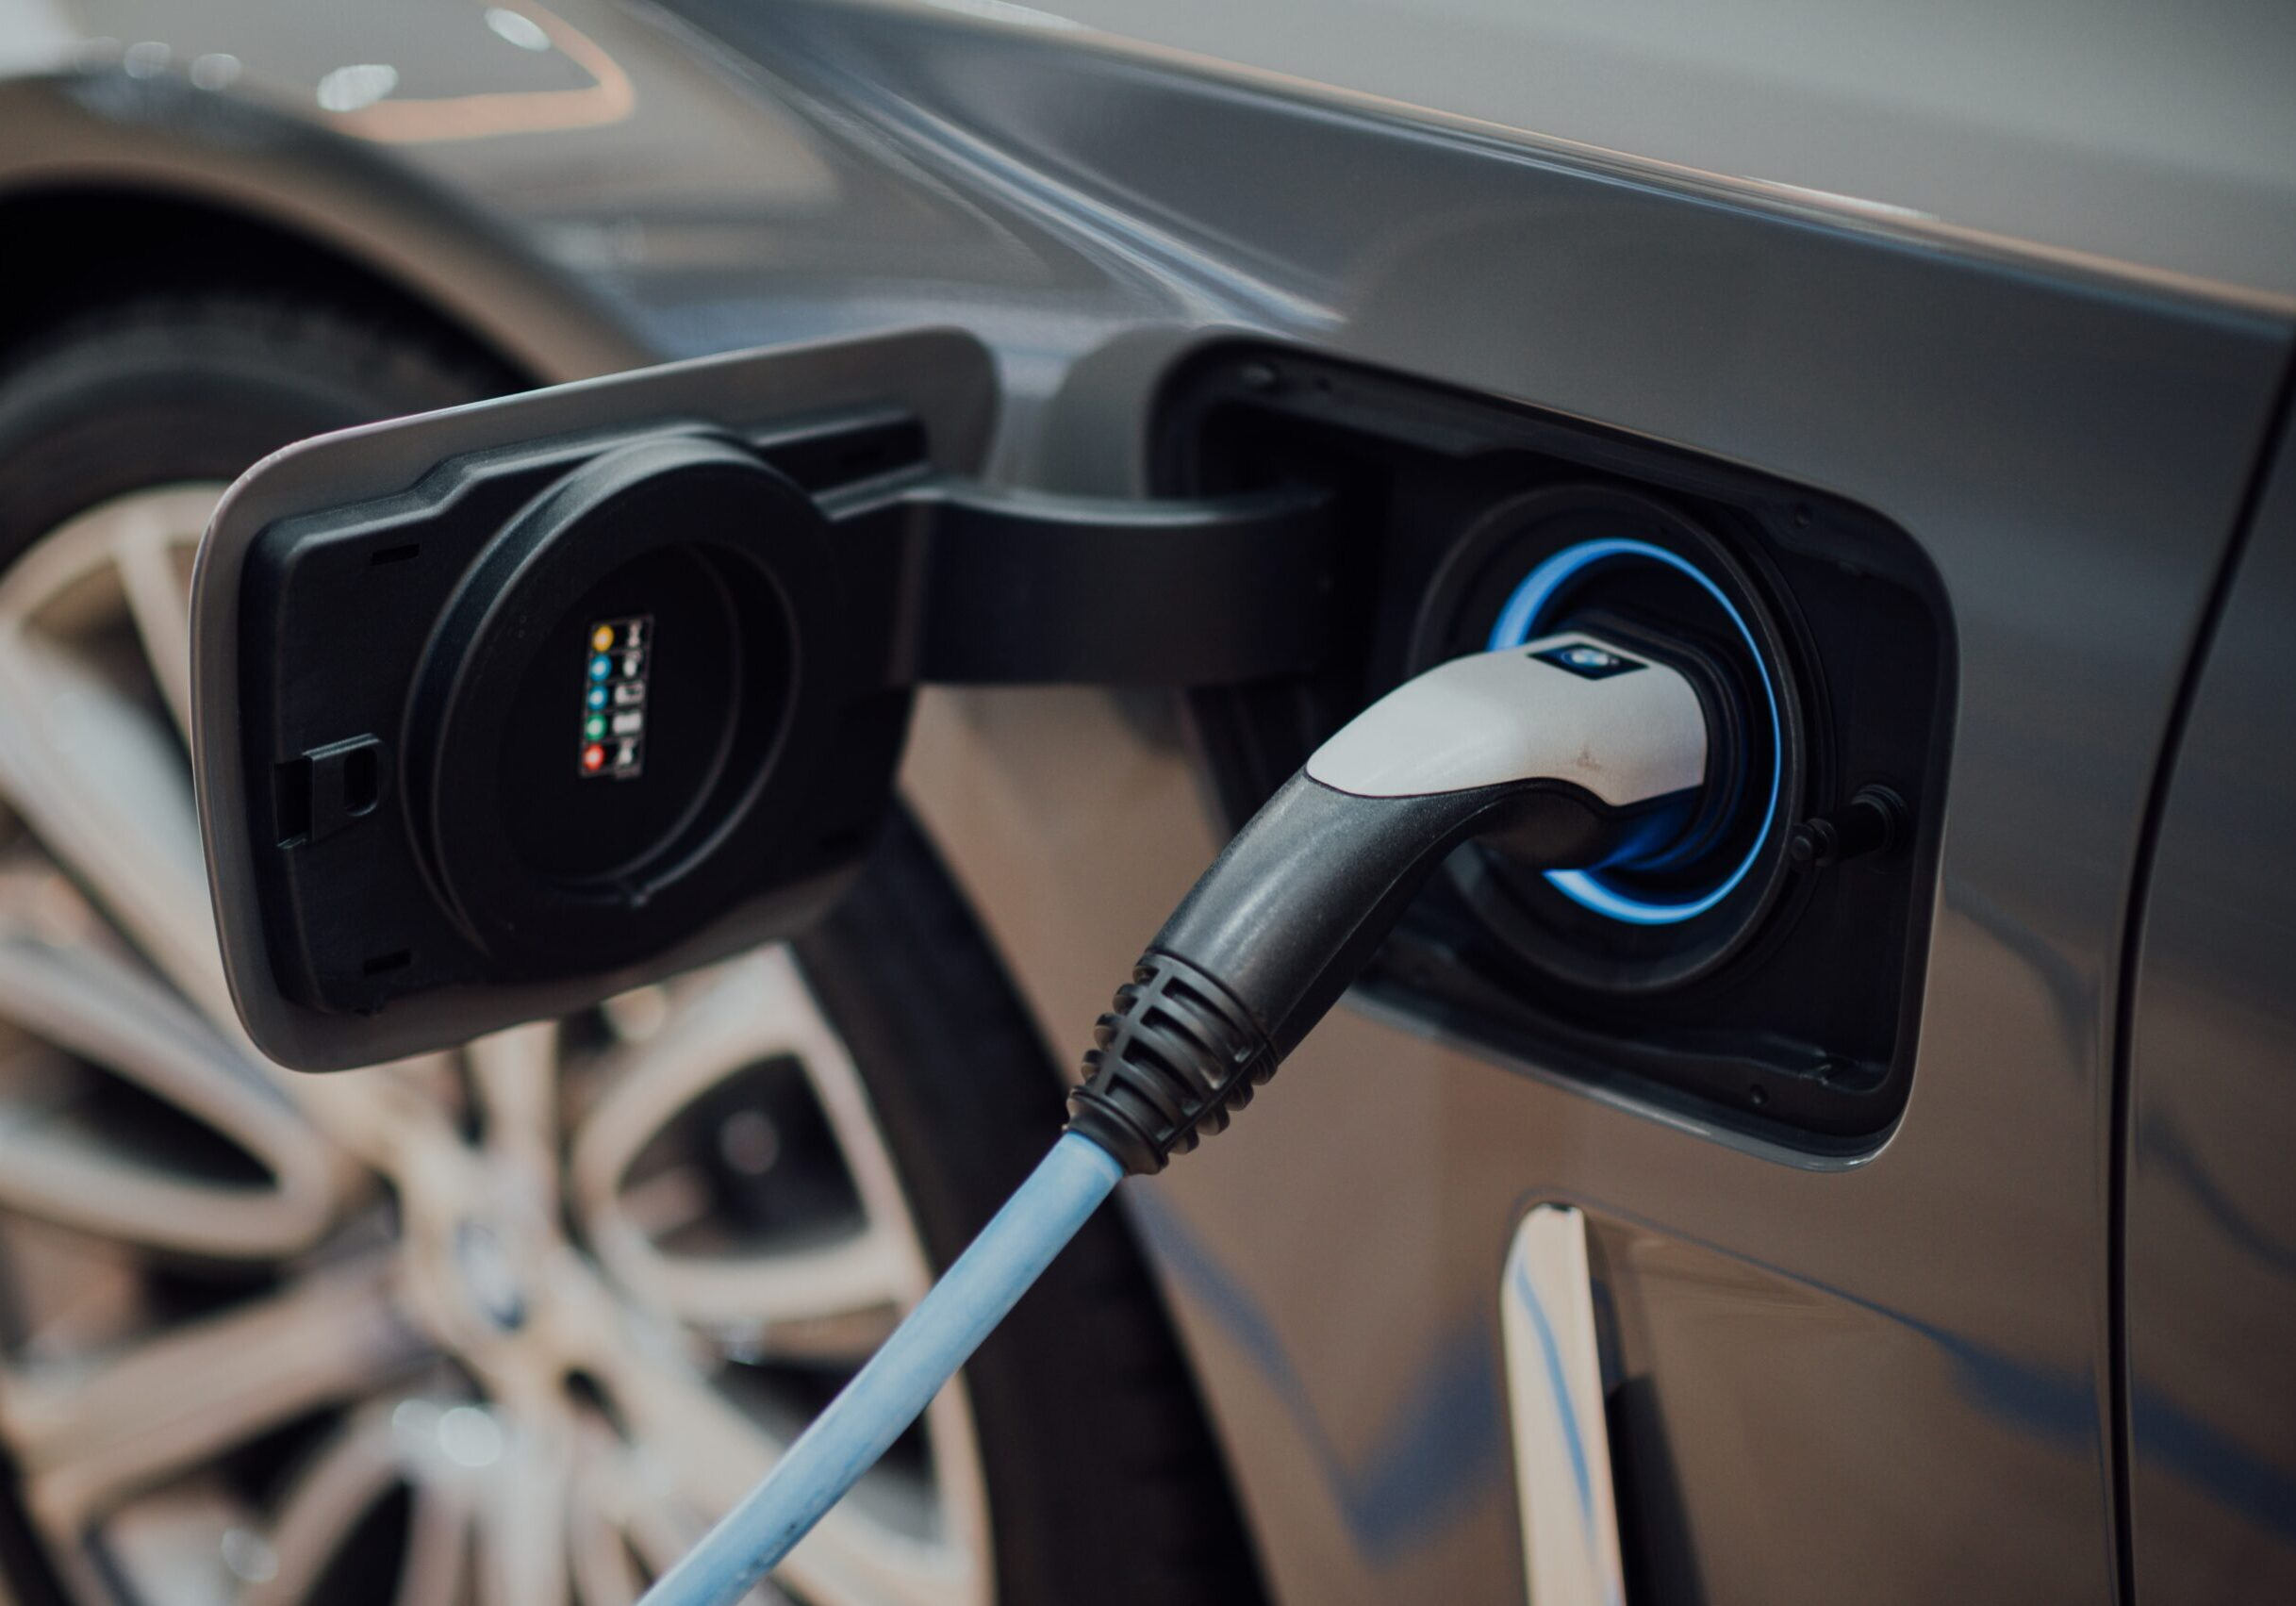 Charging Point Installation Costs Row Image